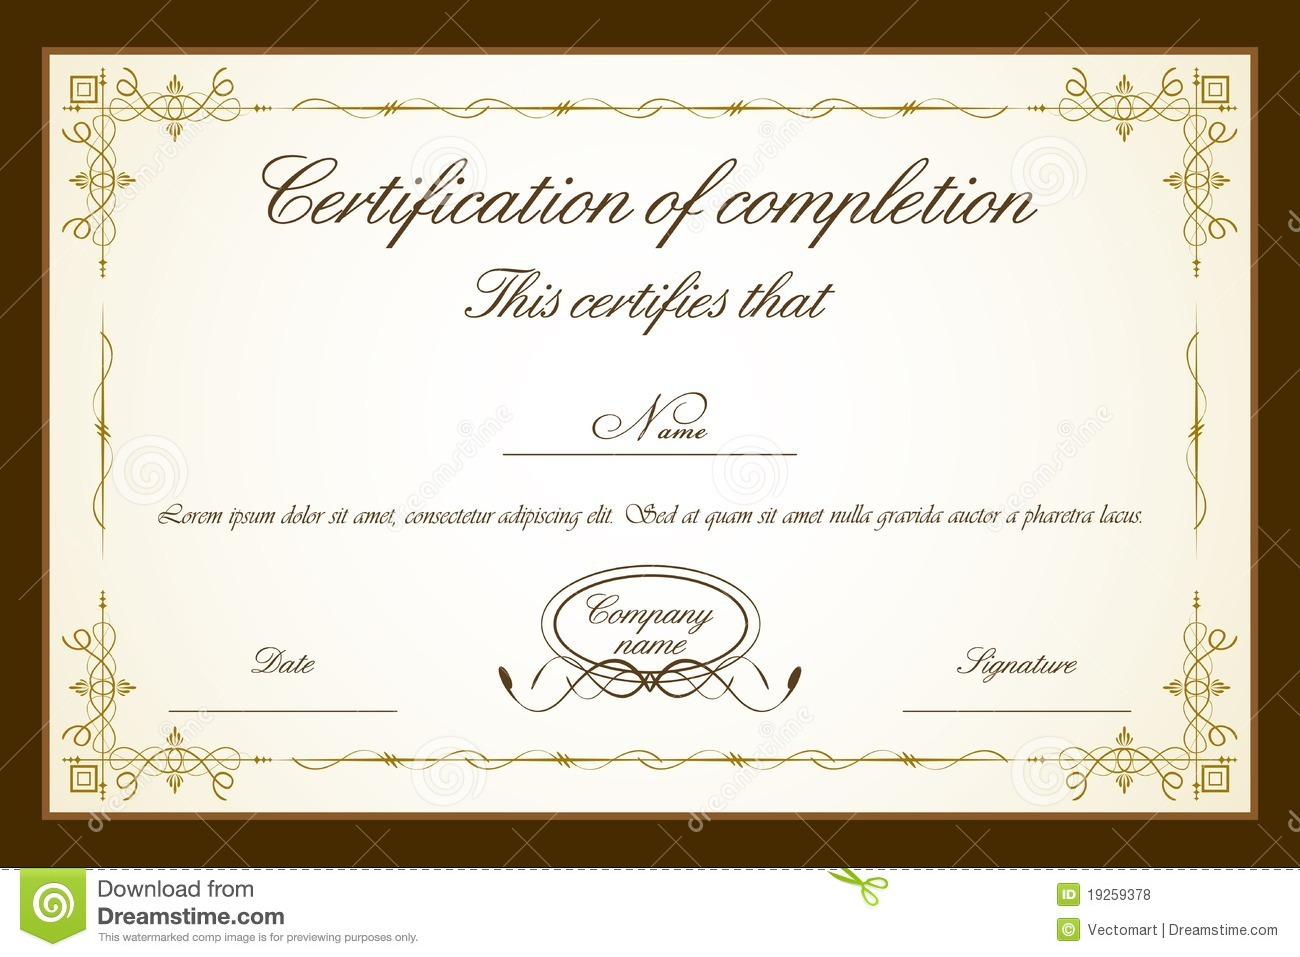 Blank certificates templates free download robertottni blank certificates templates free download yadclub Images